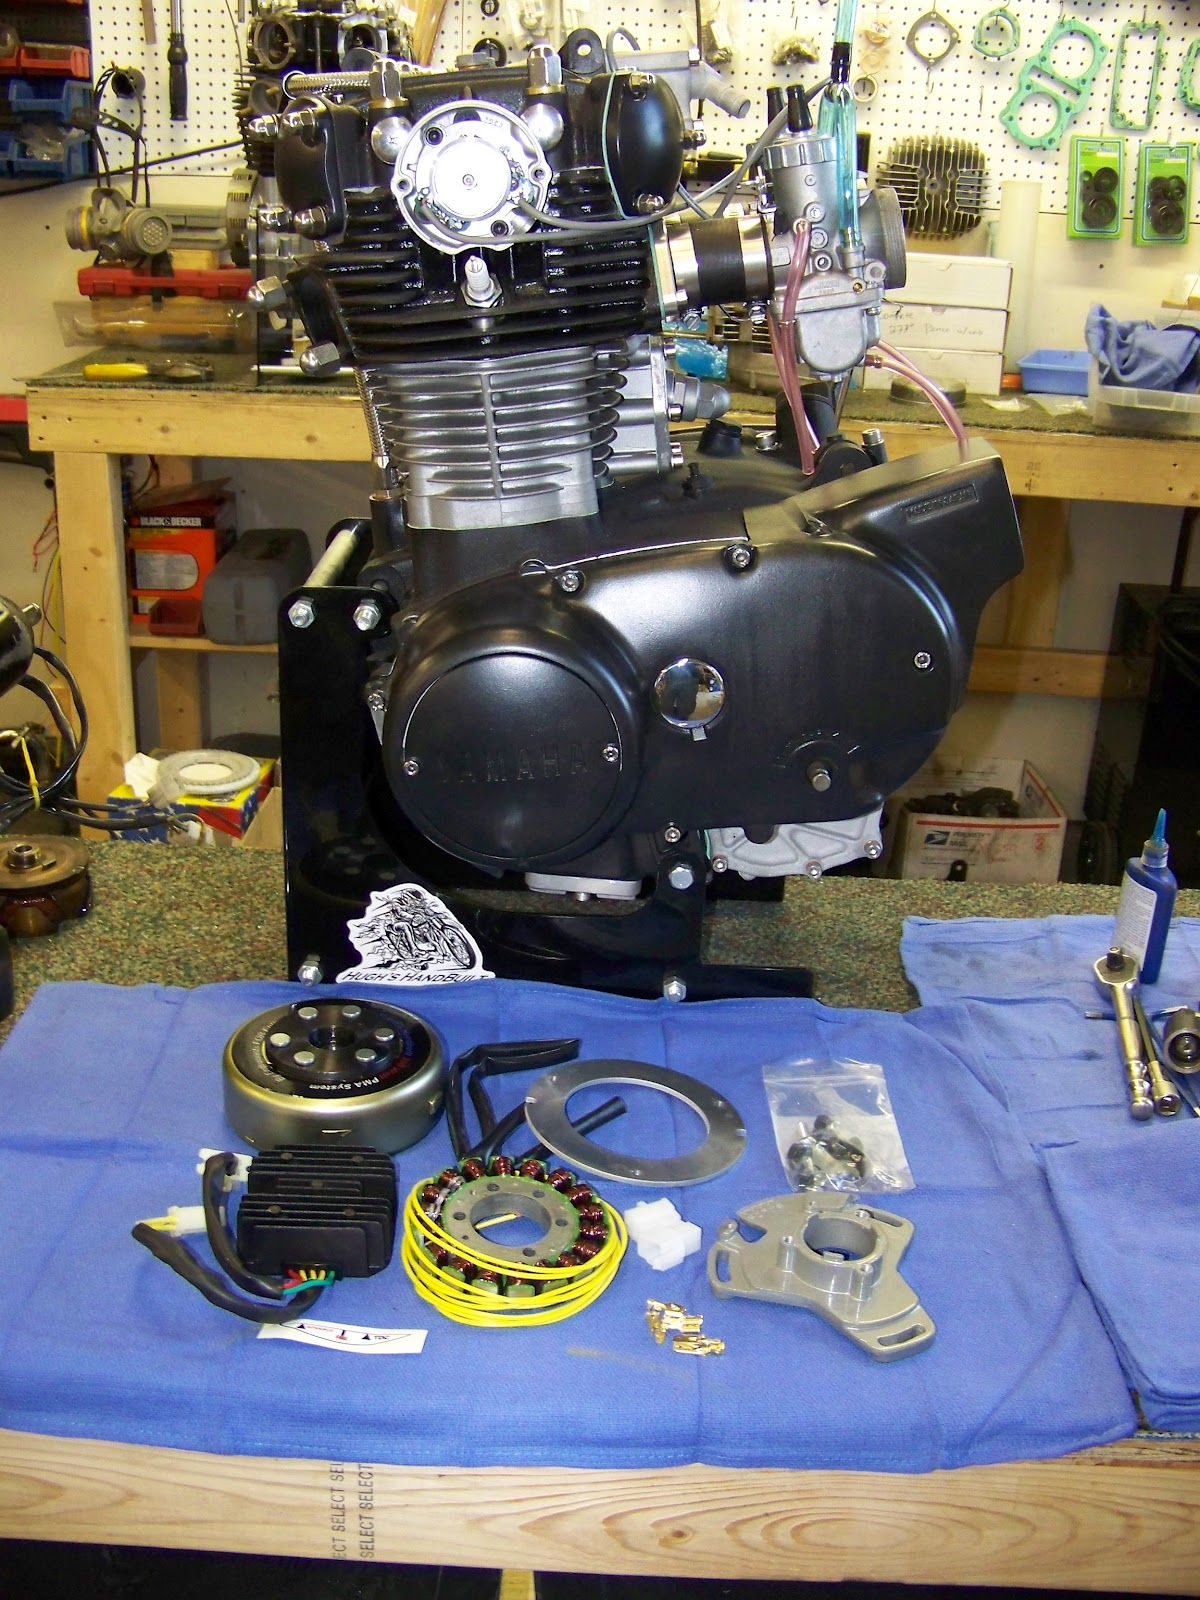 The beauty of the PMA system is that you can even get an XS650 engine  running without installing it in a bike, and charging too!